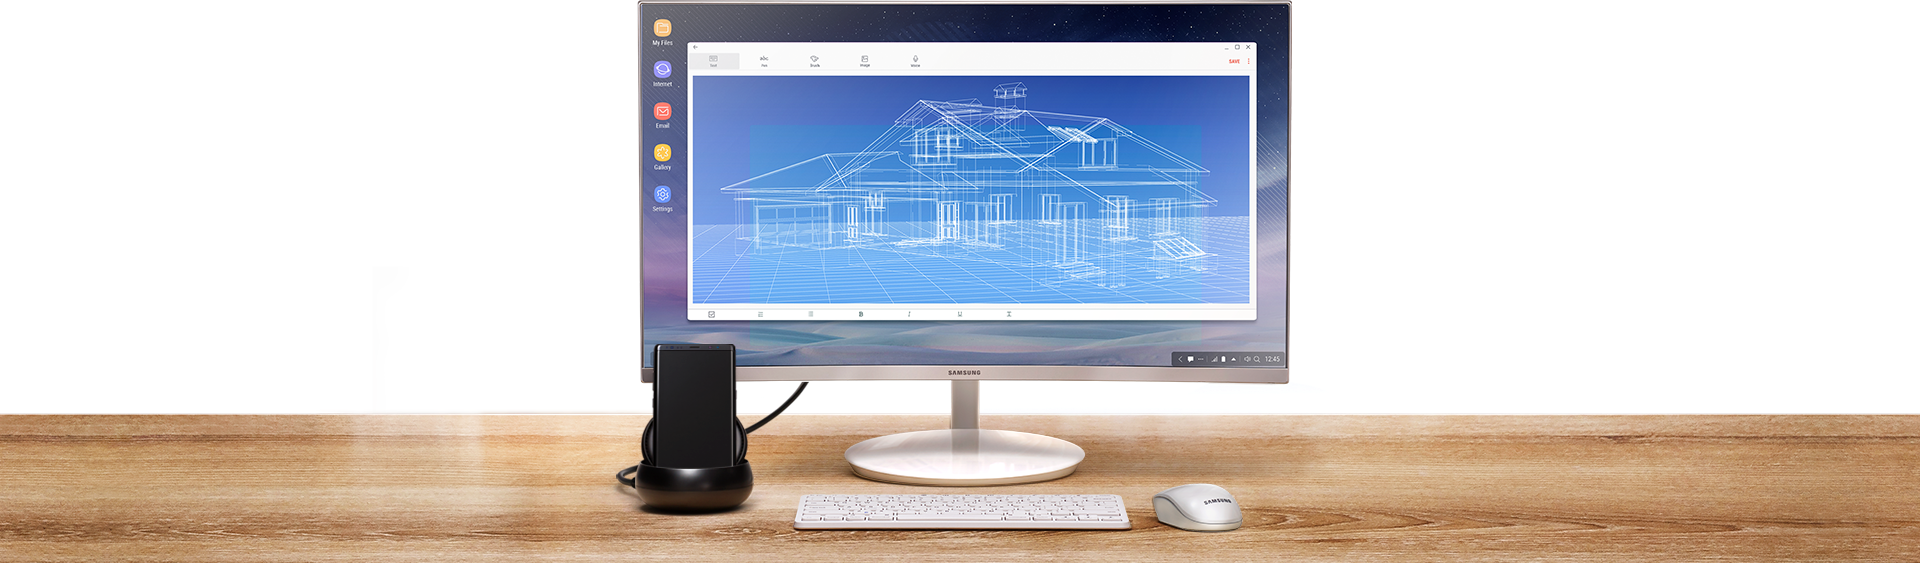 Image of a desk with Galaxy Note8 in Samsung DeX Station, with monitor, keyboard, and mouse.